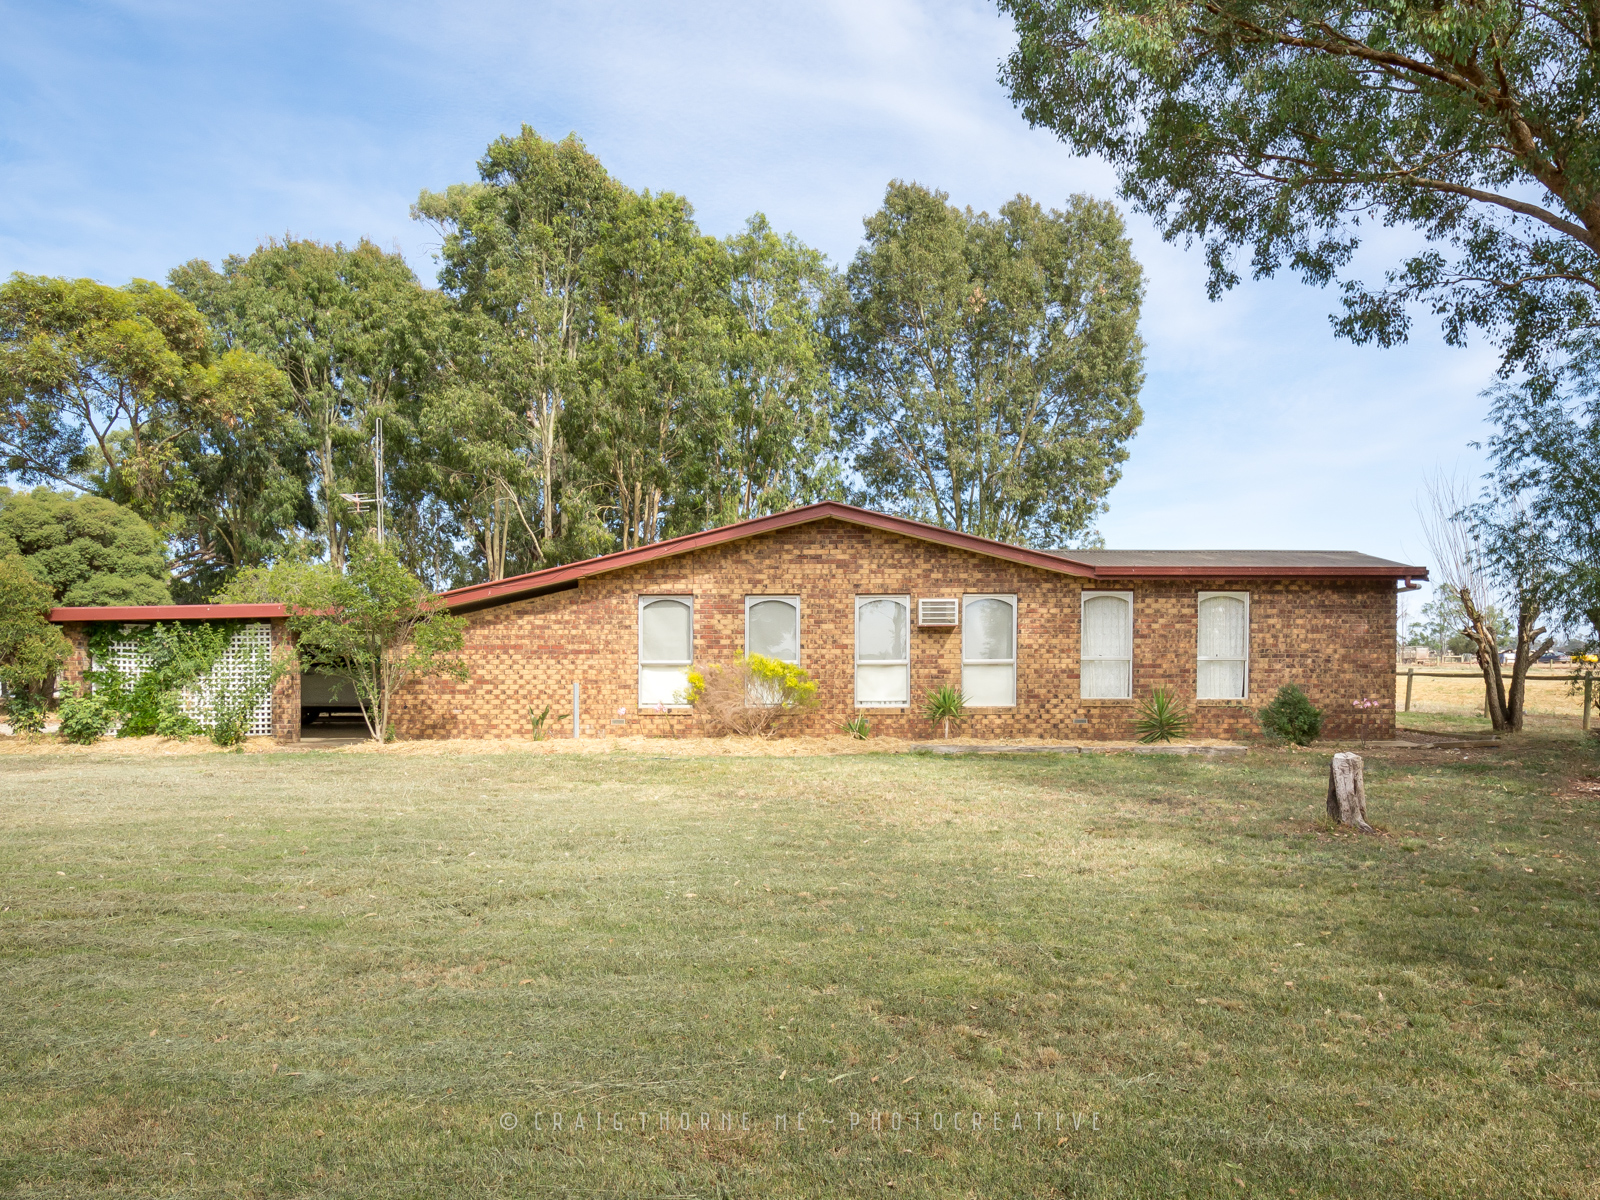 180215-02-CRE-185-Ross-Rd-Coomboona–©CT-THN_2262.jpg